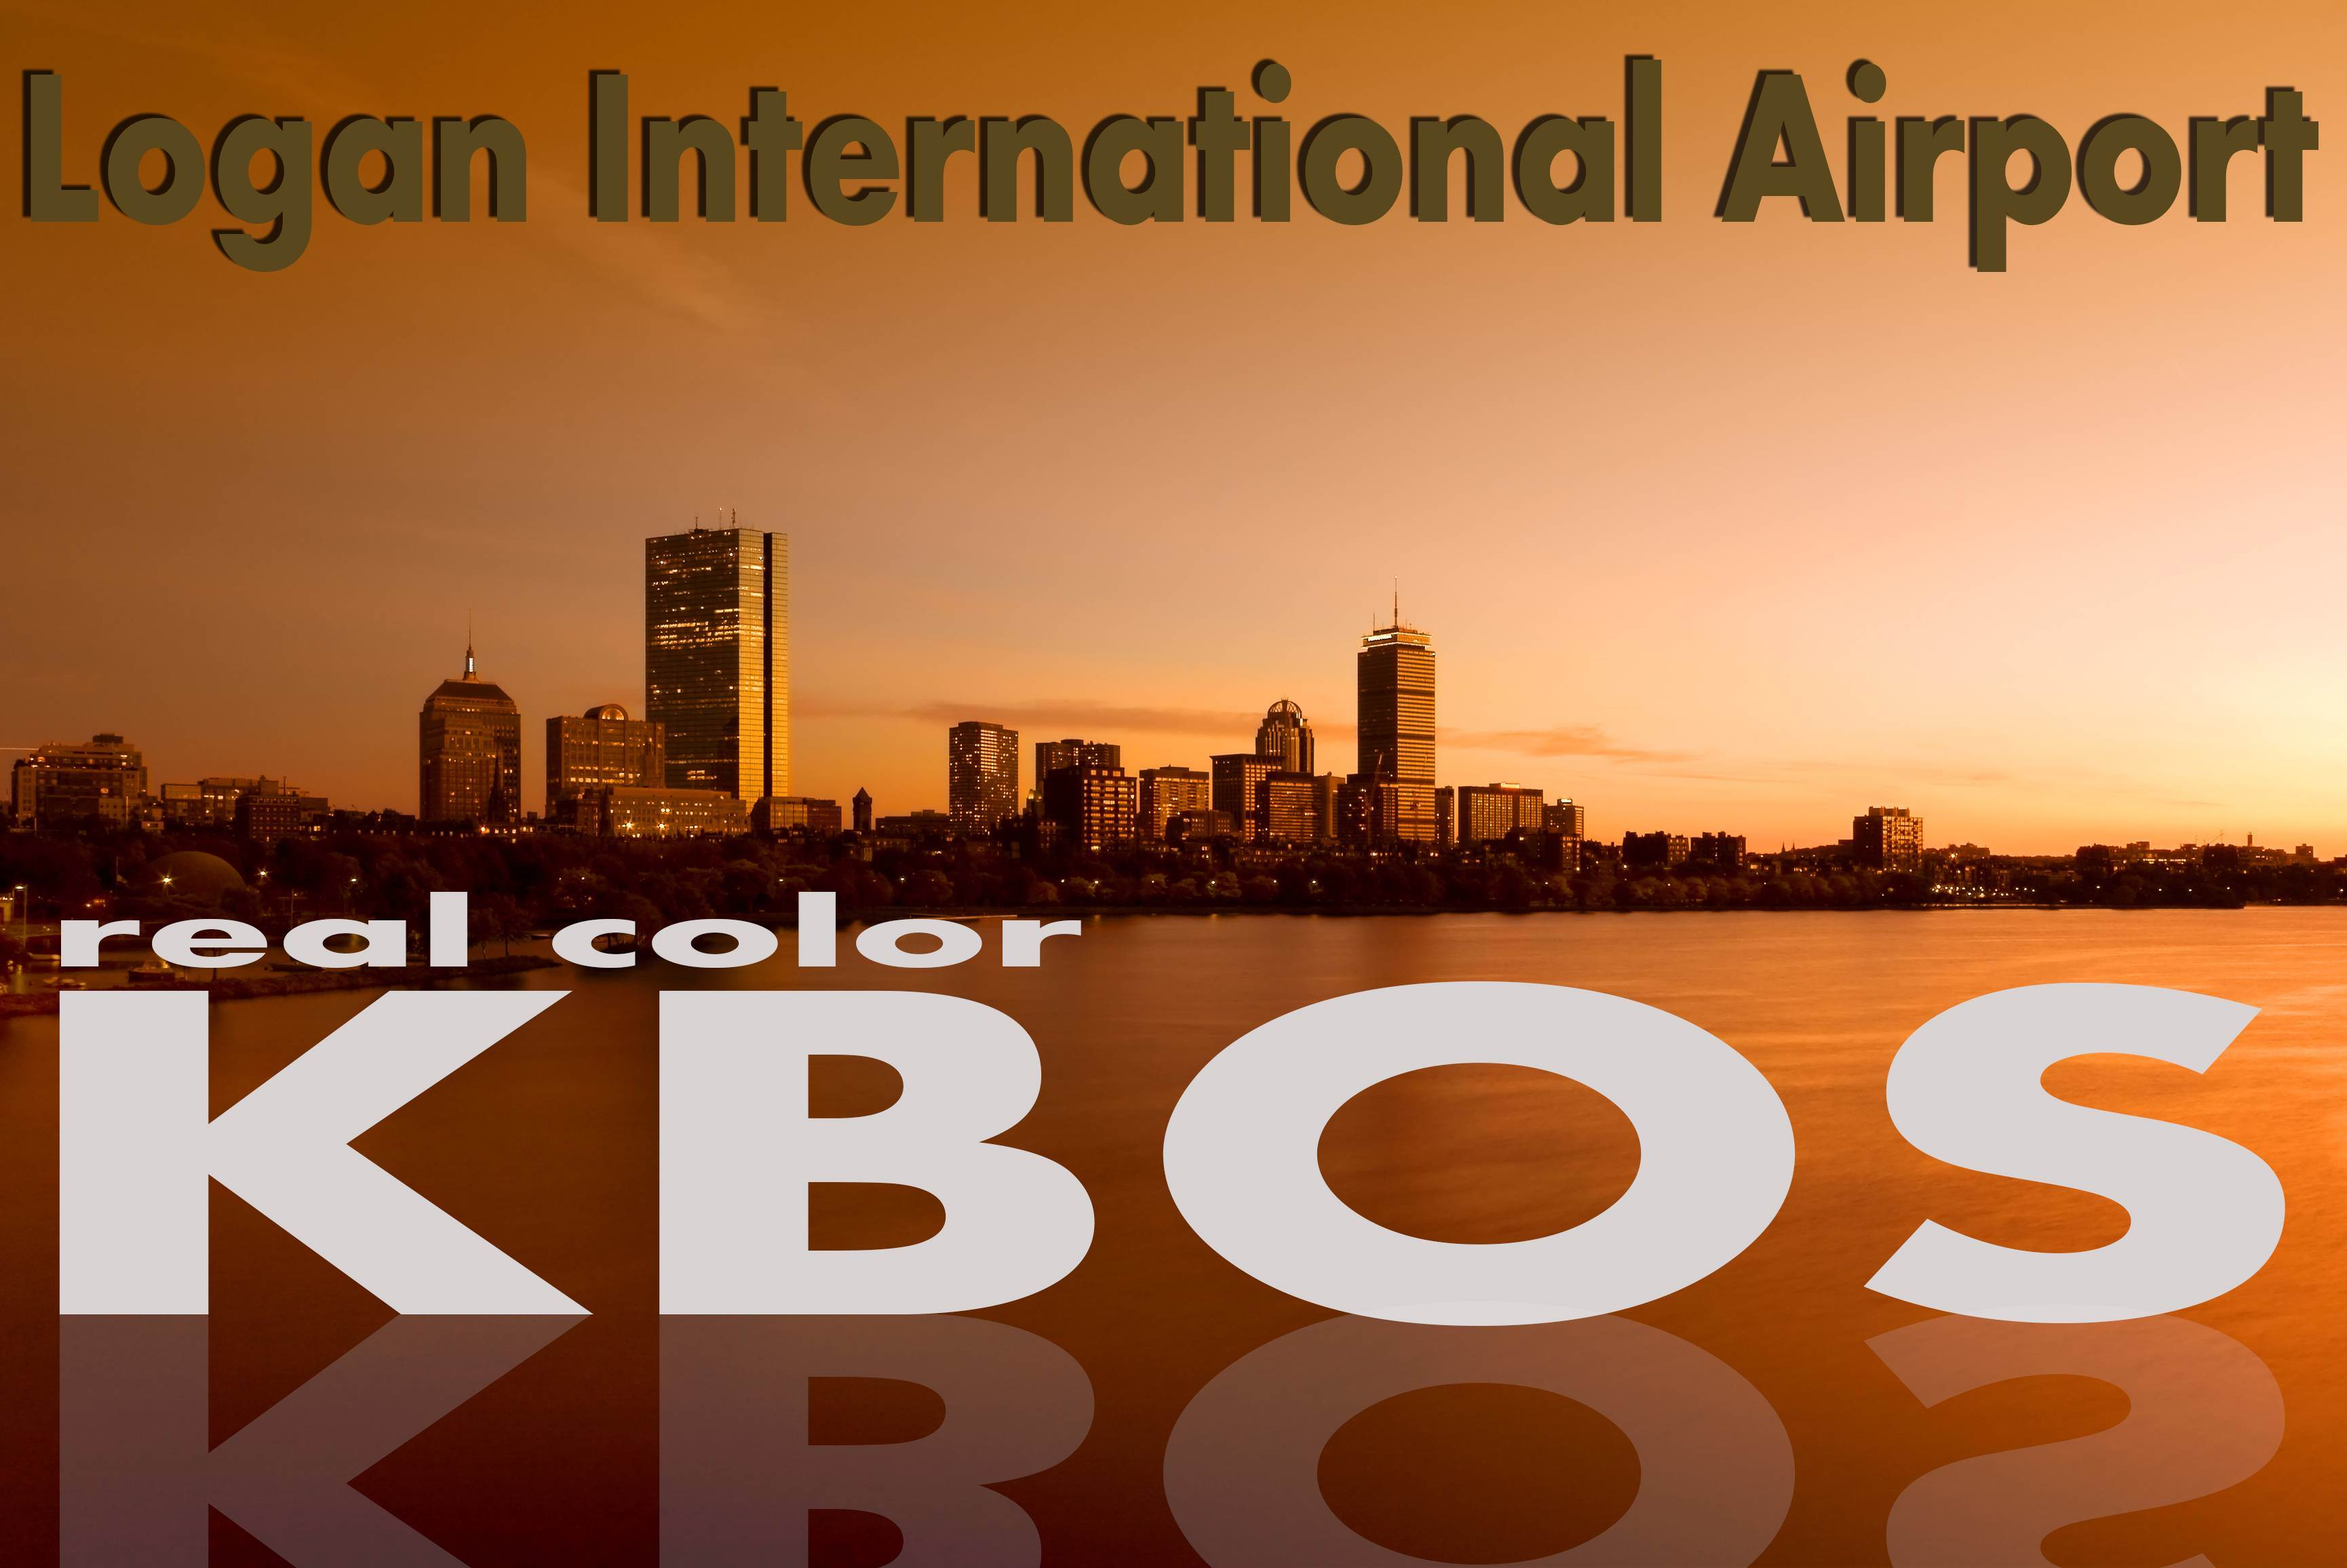 Real Color KBOS for Tower! 2011